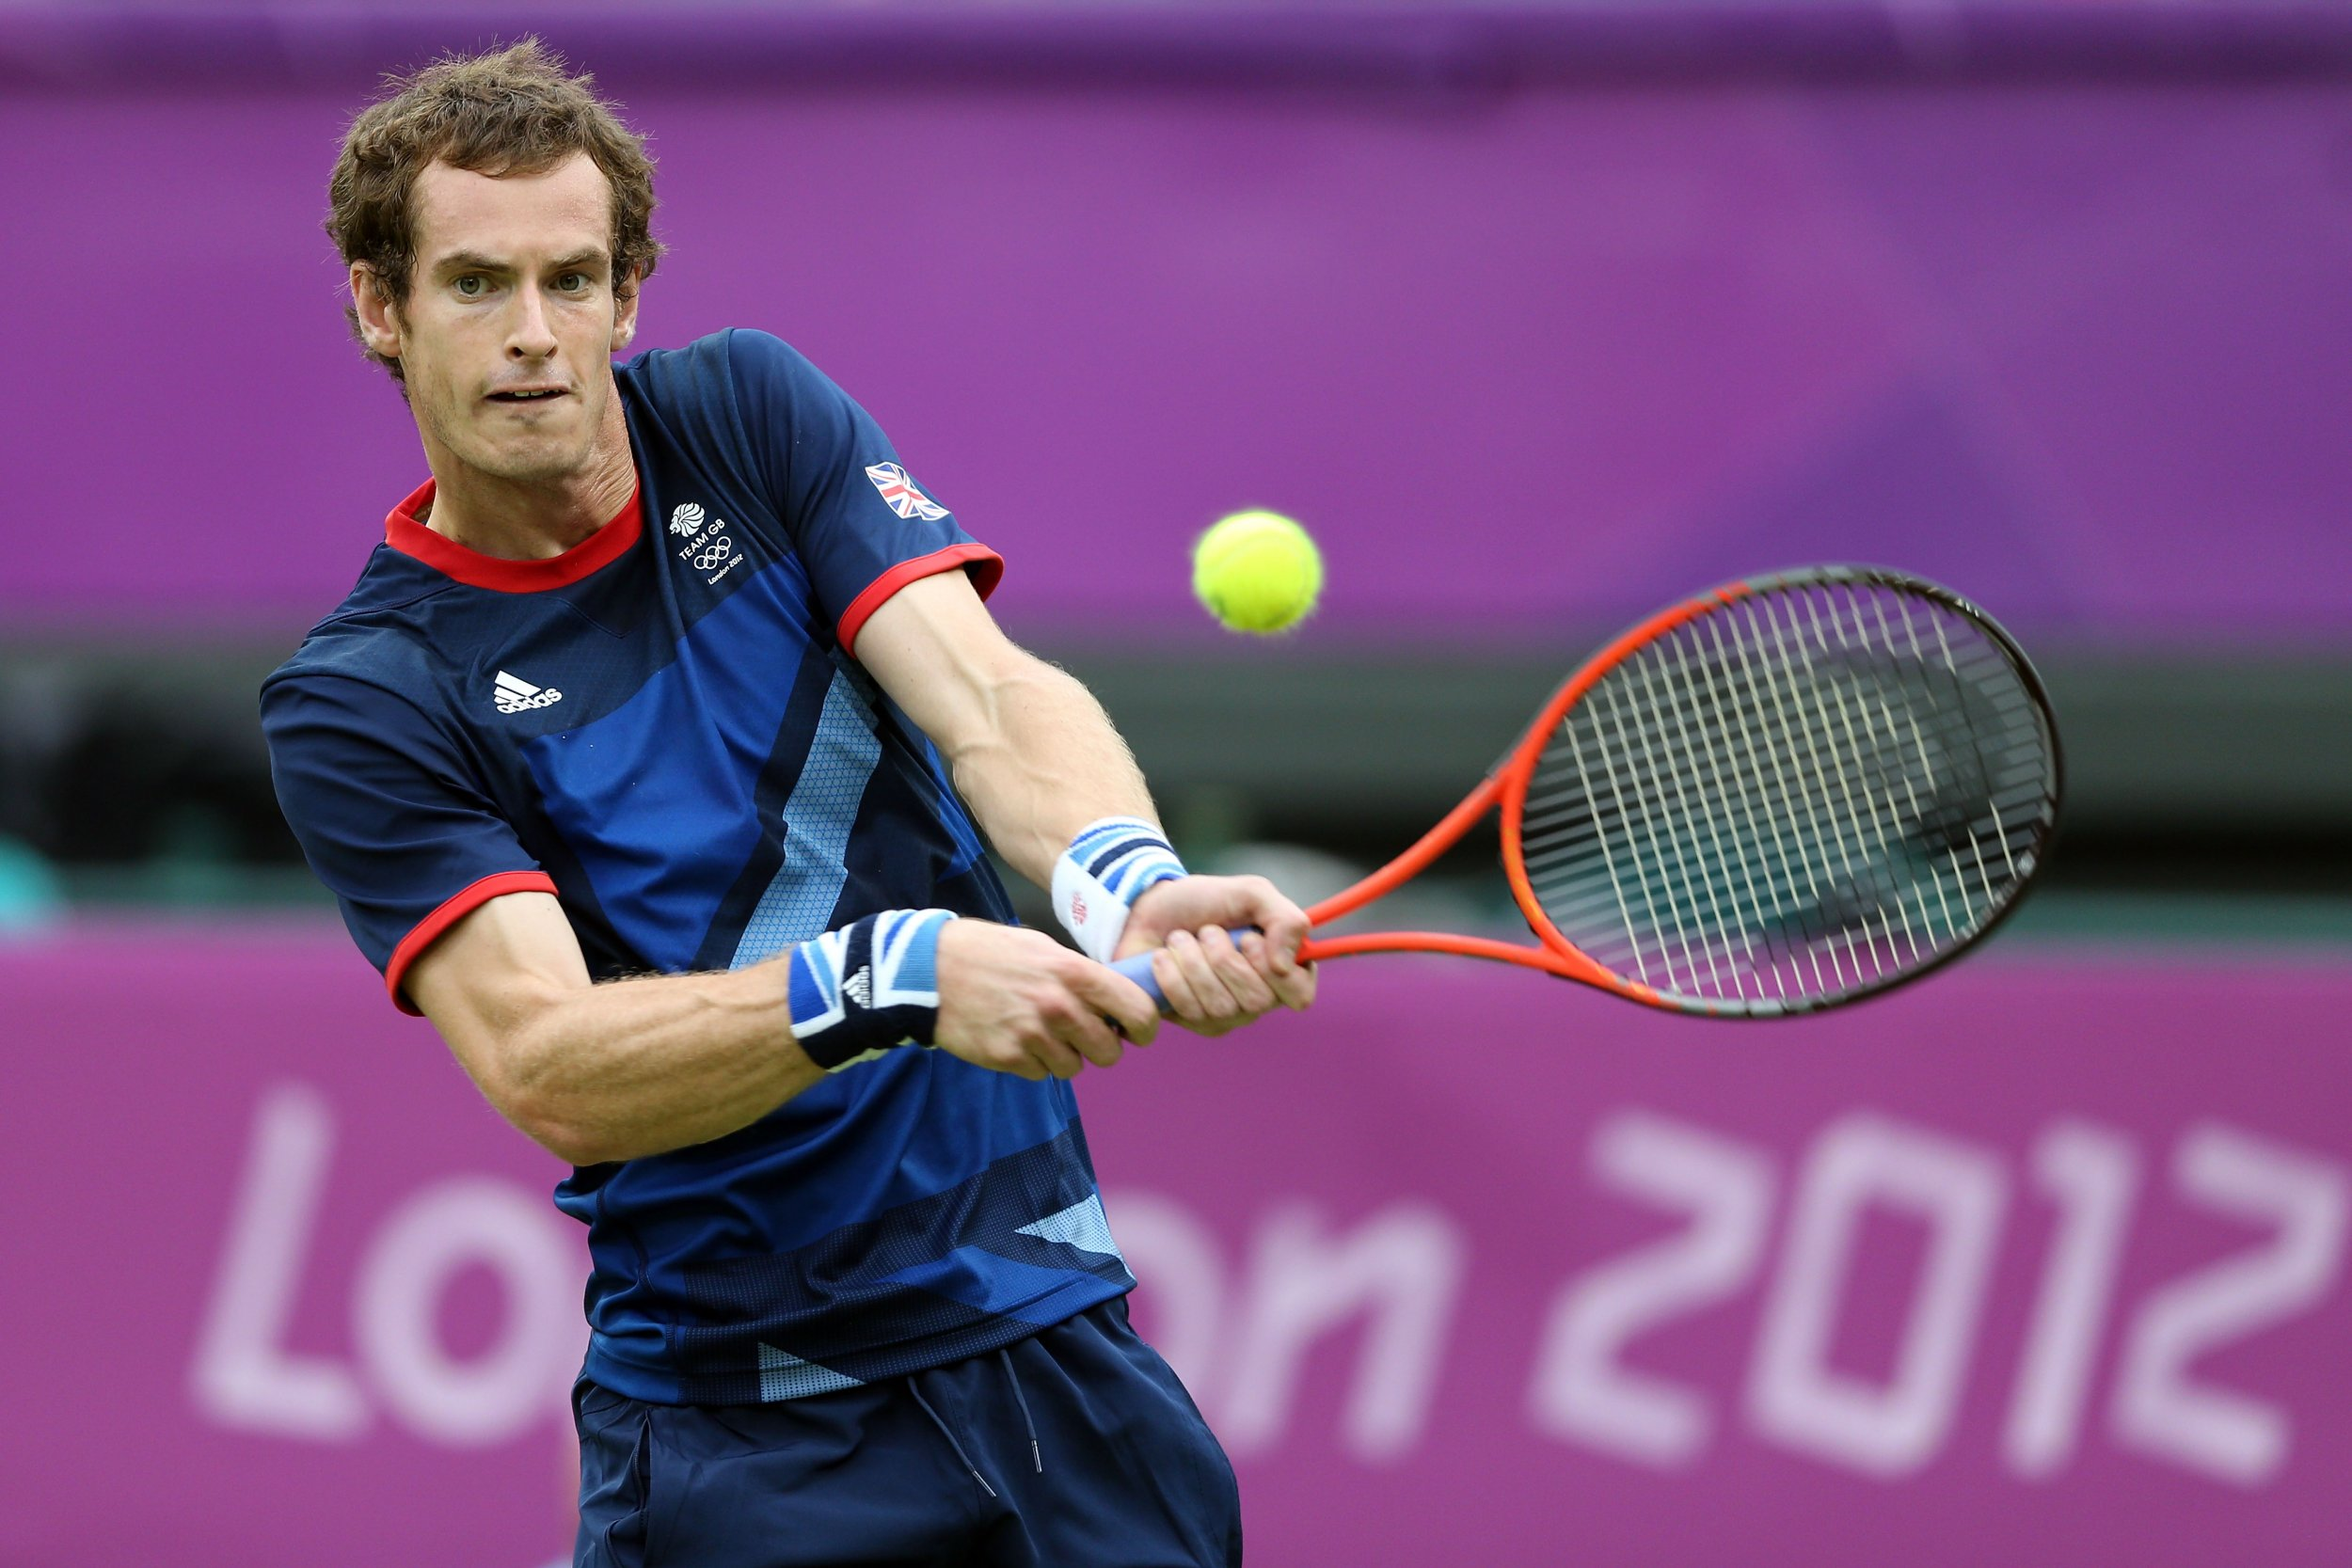 Andy Murray: Olympic Village Hinders Chance For Gold